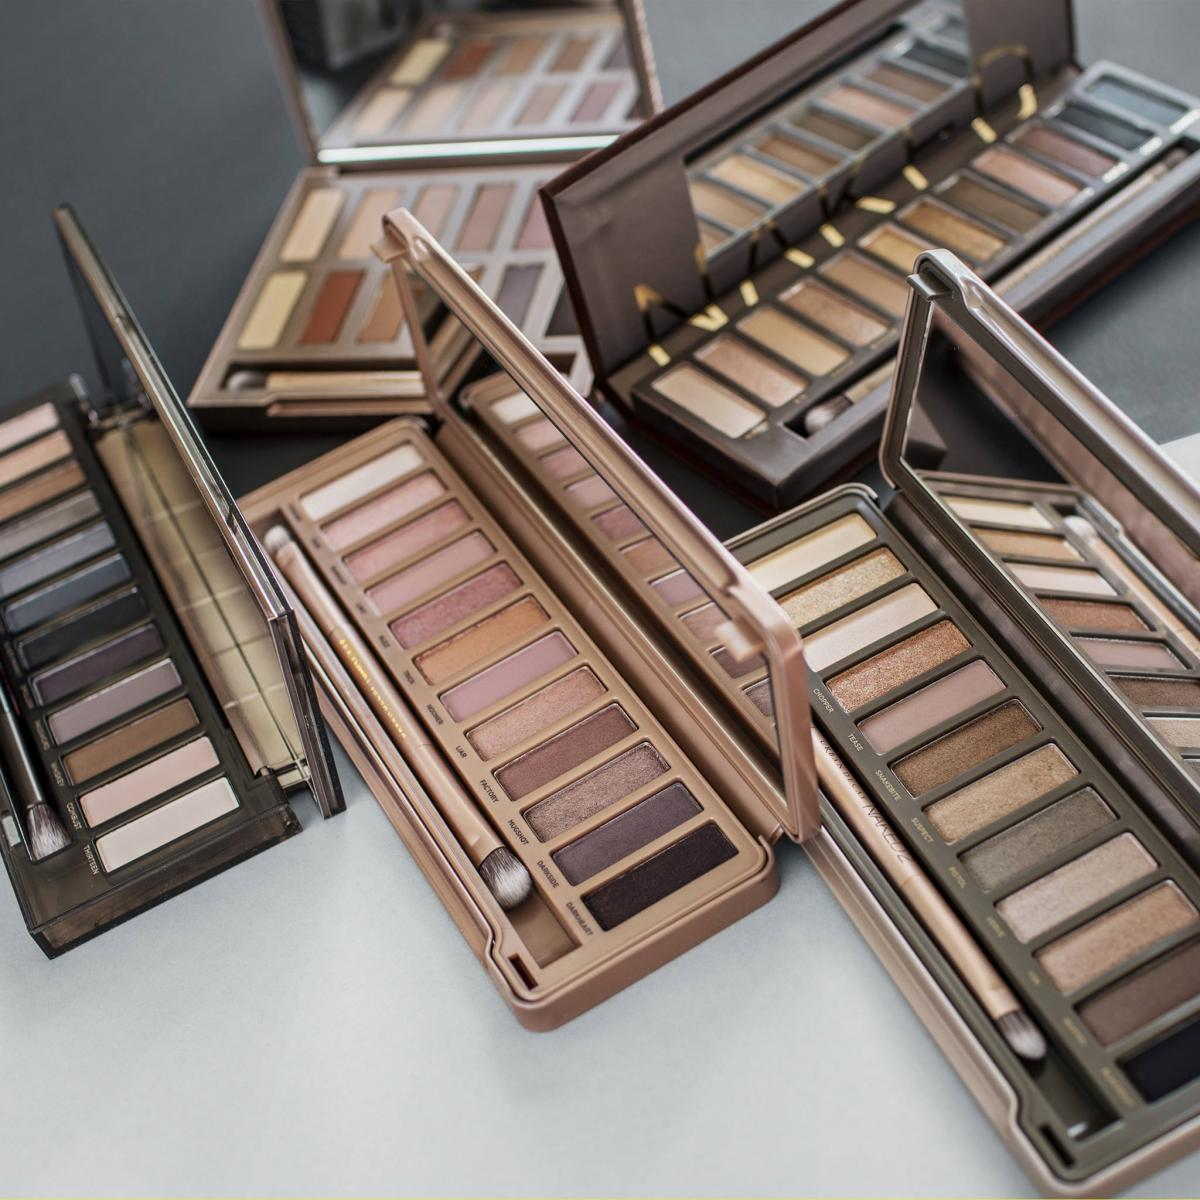 Urban decay naked cruelty free makeup